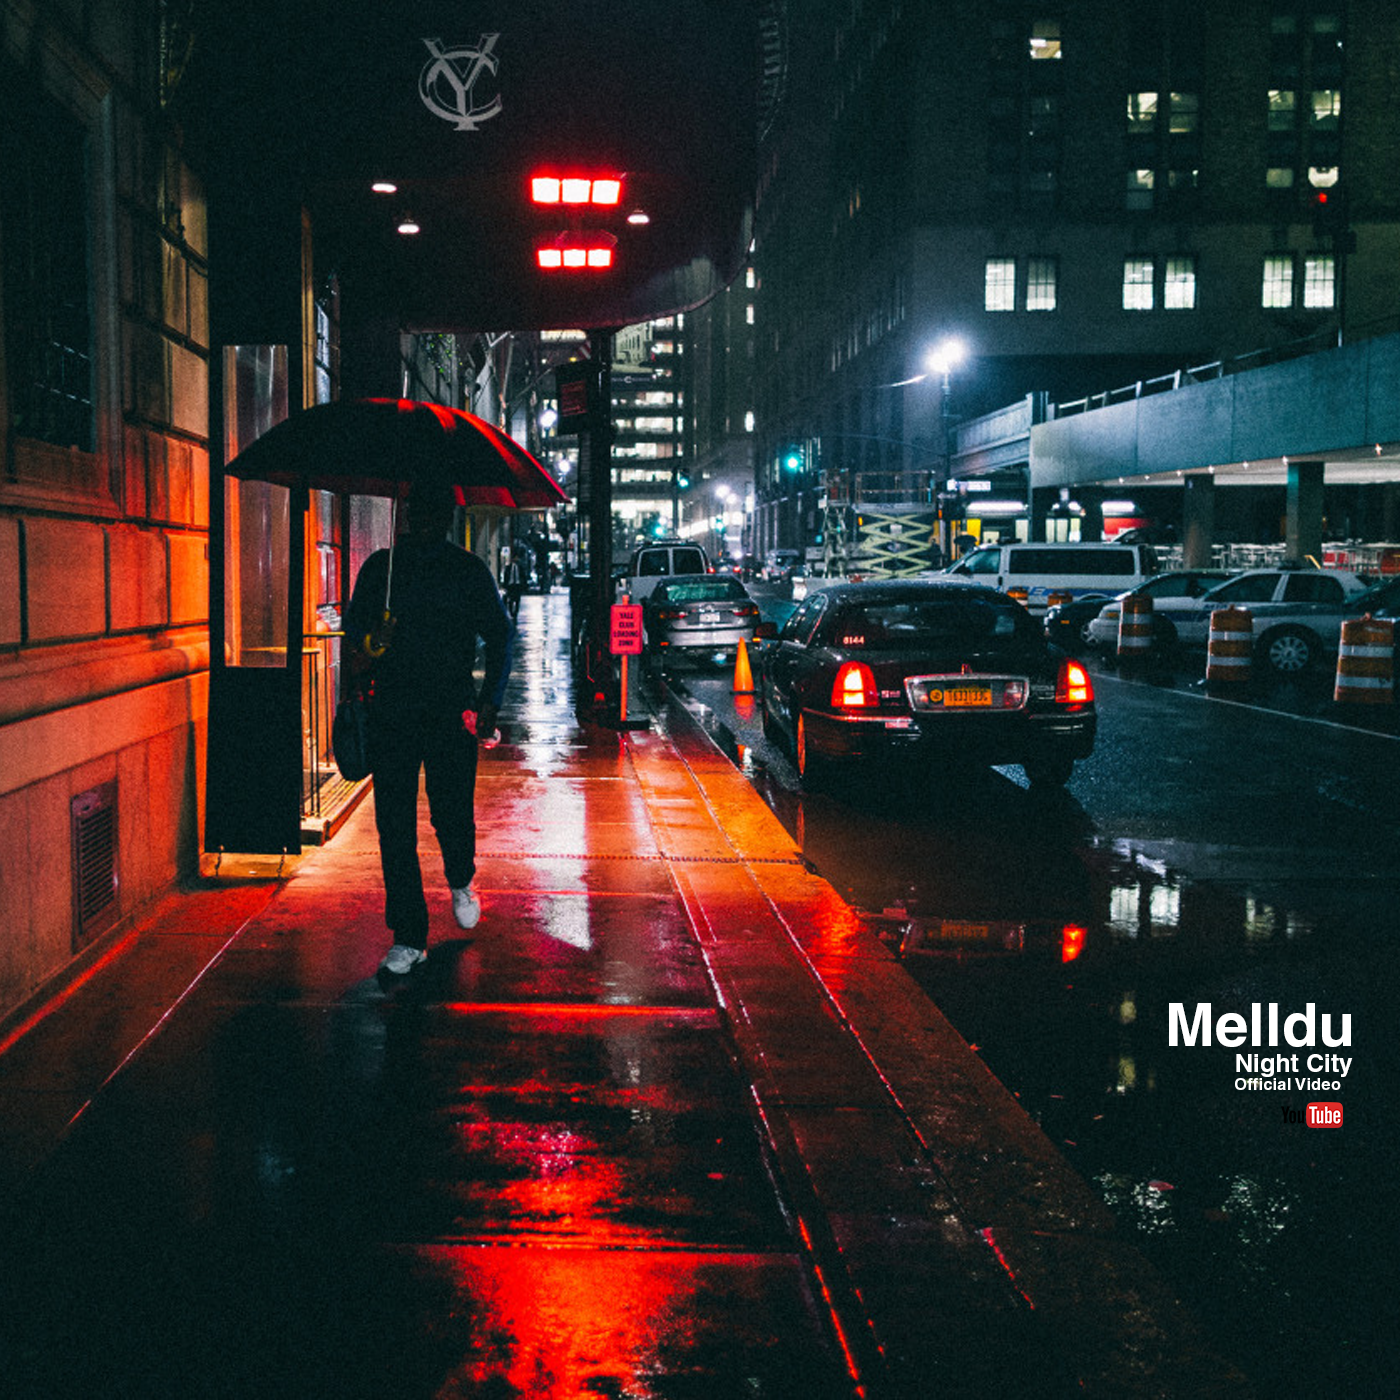 MELLDU - Night City